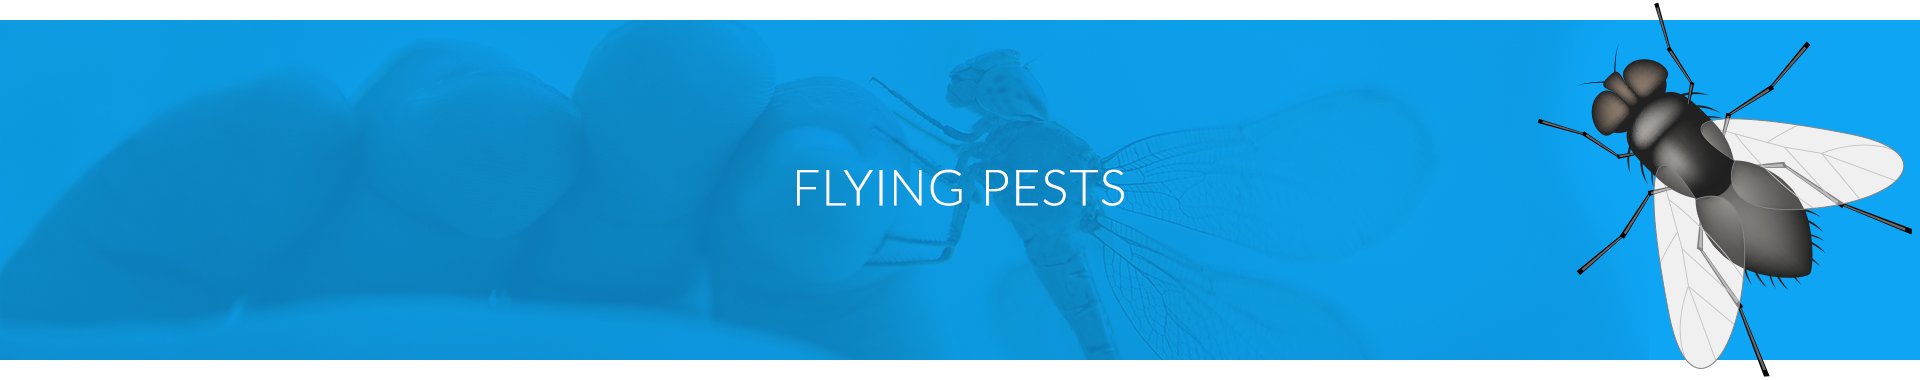 PestChem Flying Pests Banner